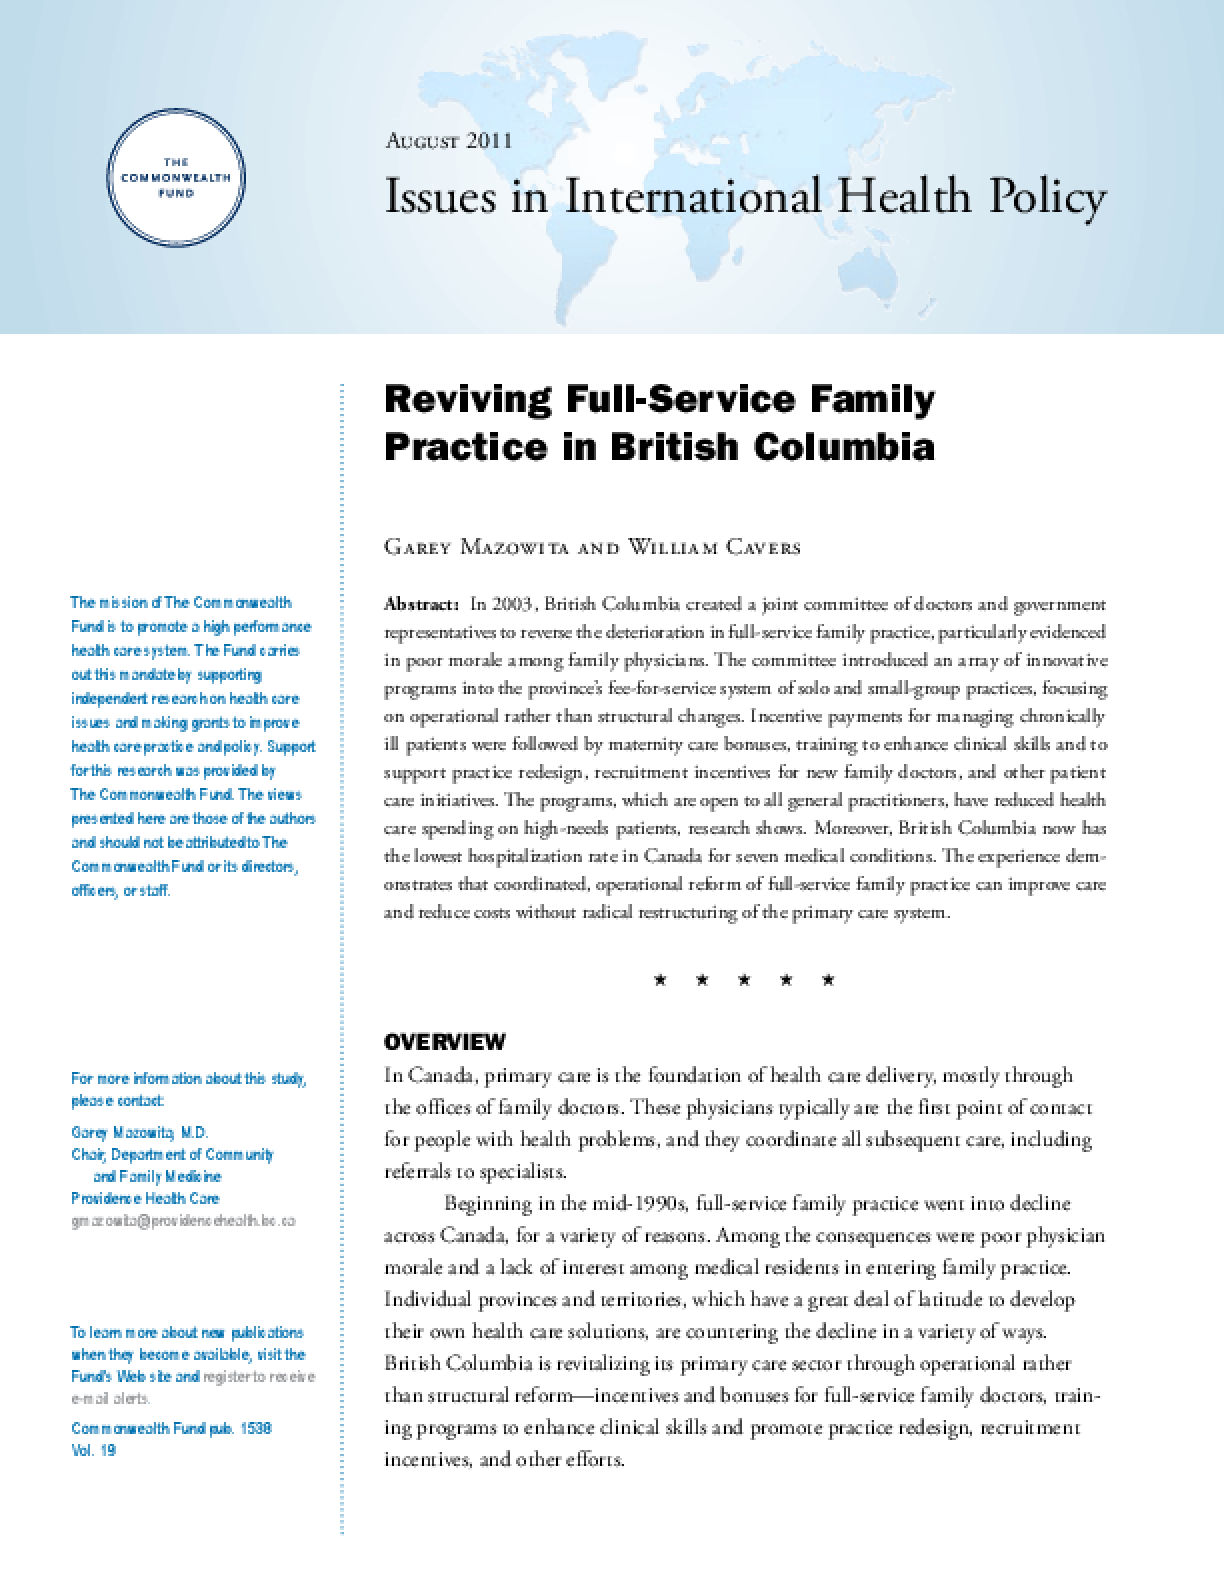 Reviving Full-Service Family Practice in British Columbia